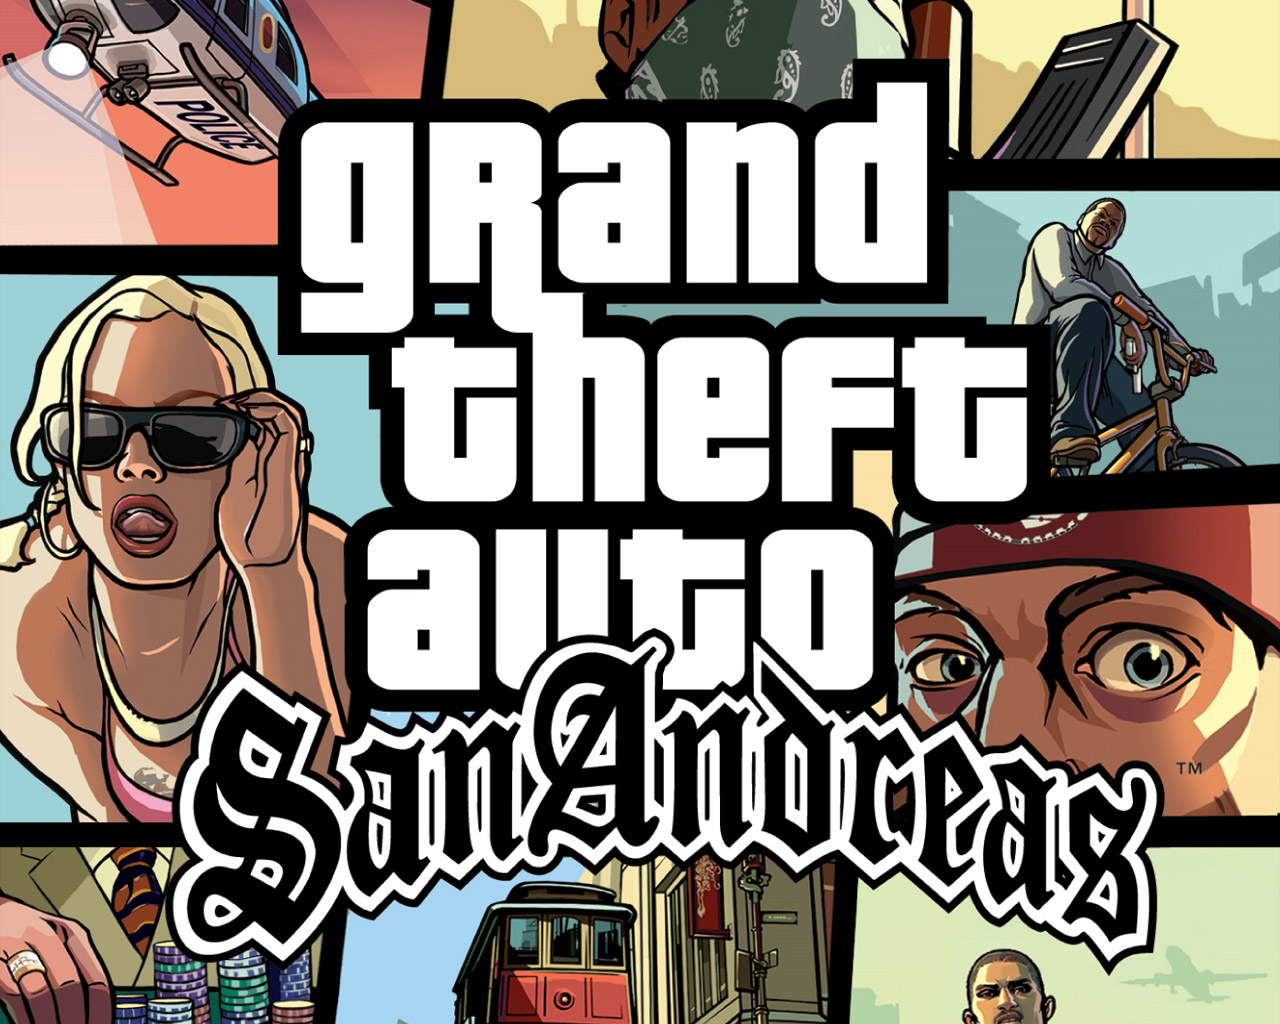 GTA San Andreas Wallpaper image - GTA fans - Mod DB